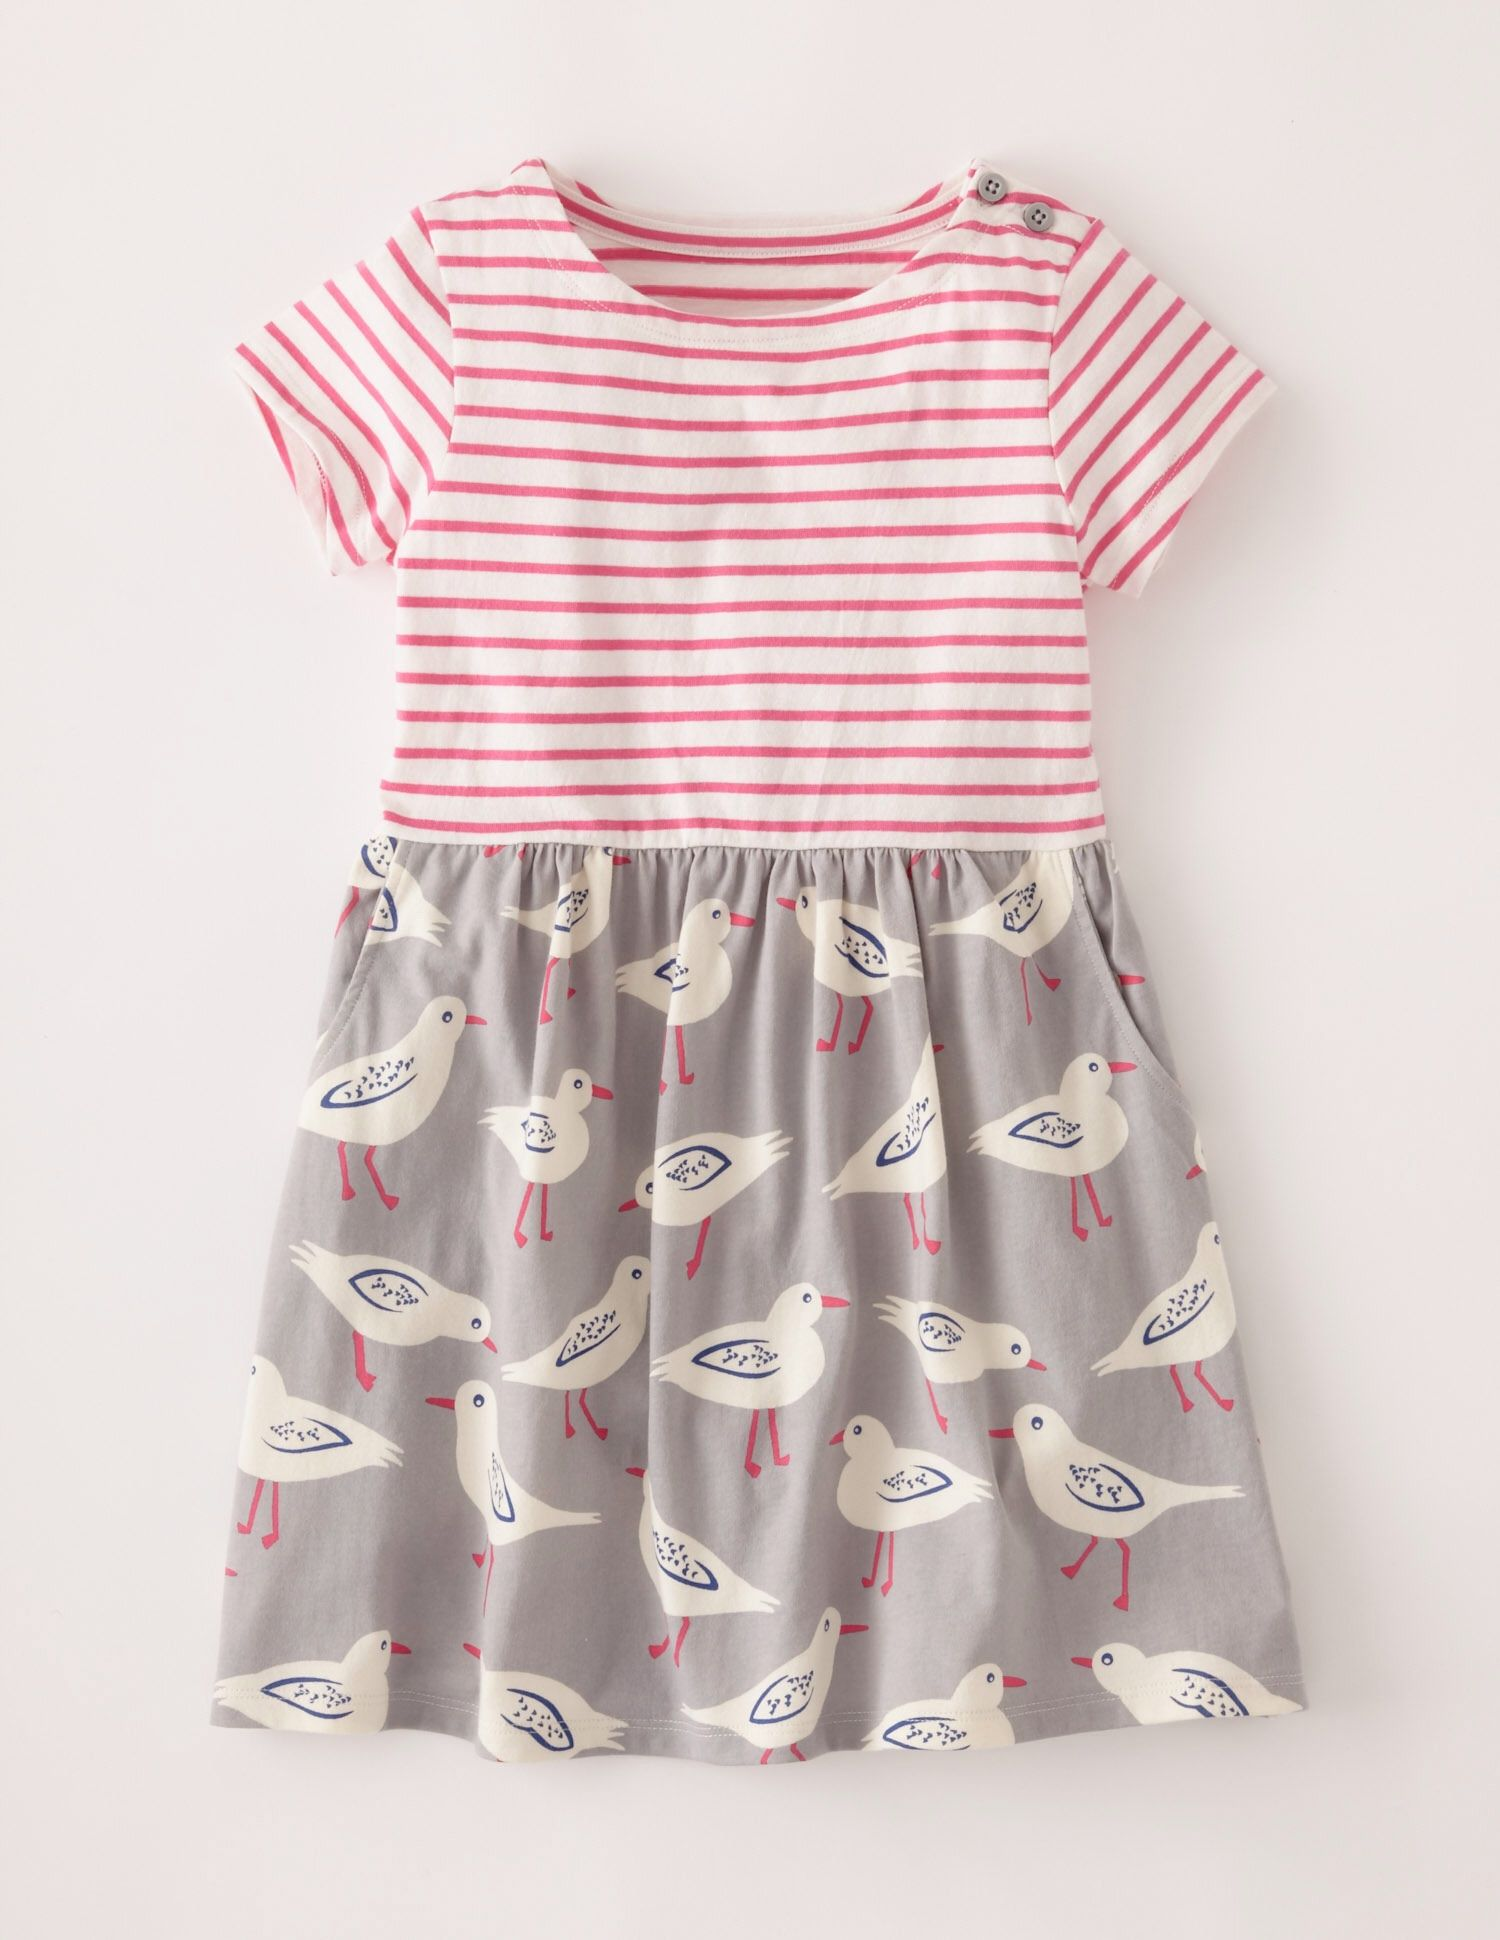 Needy Need Dresses Kids Girl Girl Outfits Kids Outfits [ 1940 x 1500 Pixel ]